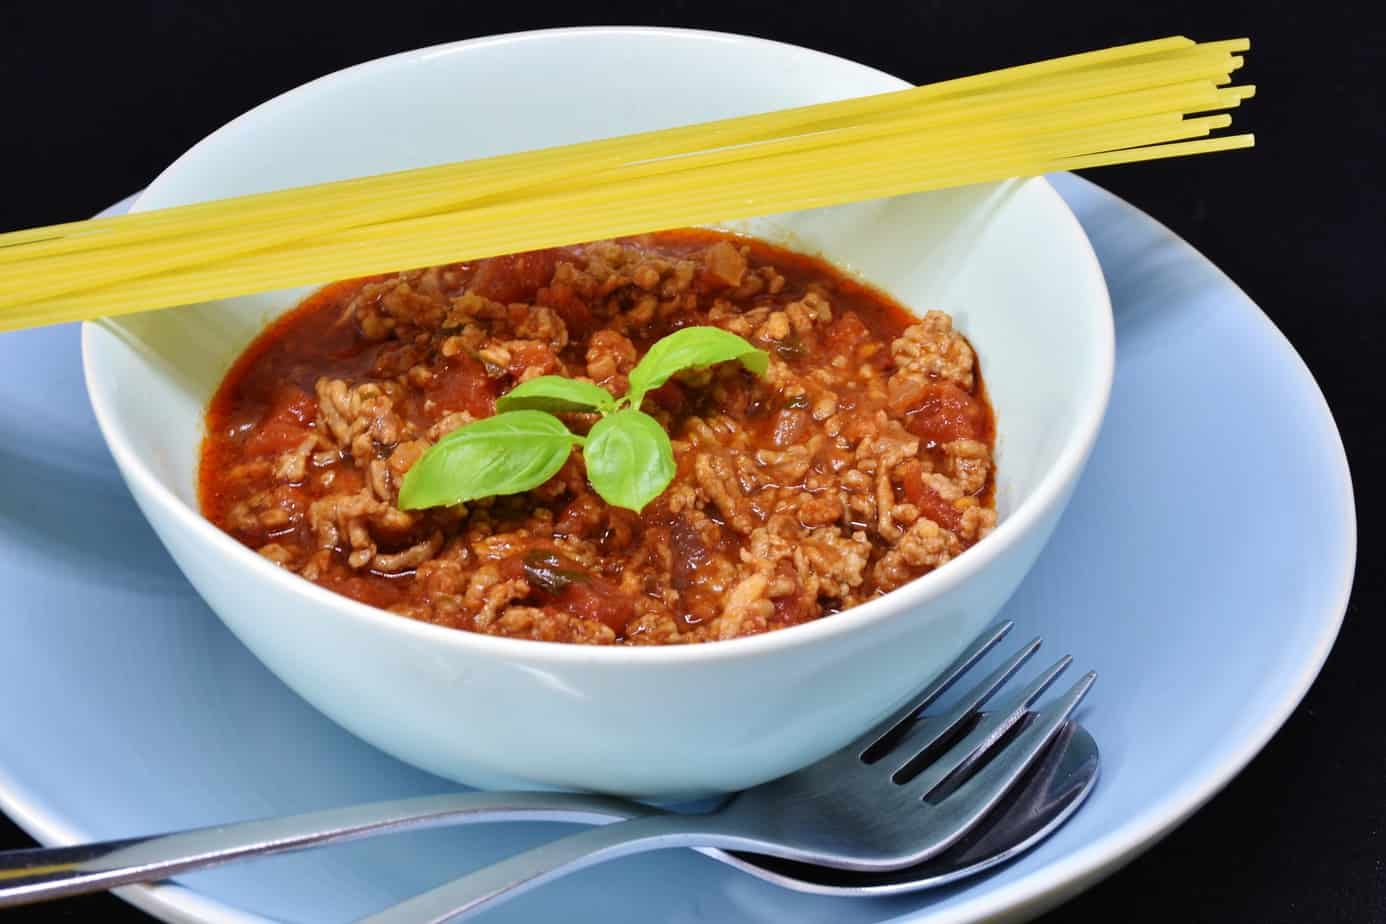 Shows a bowl of chili to show that nourishing meals can be simple.